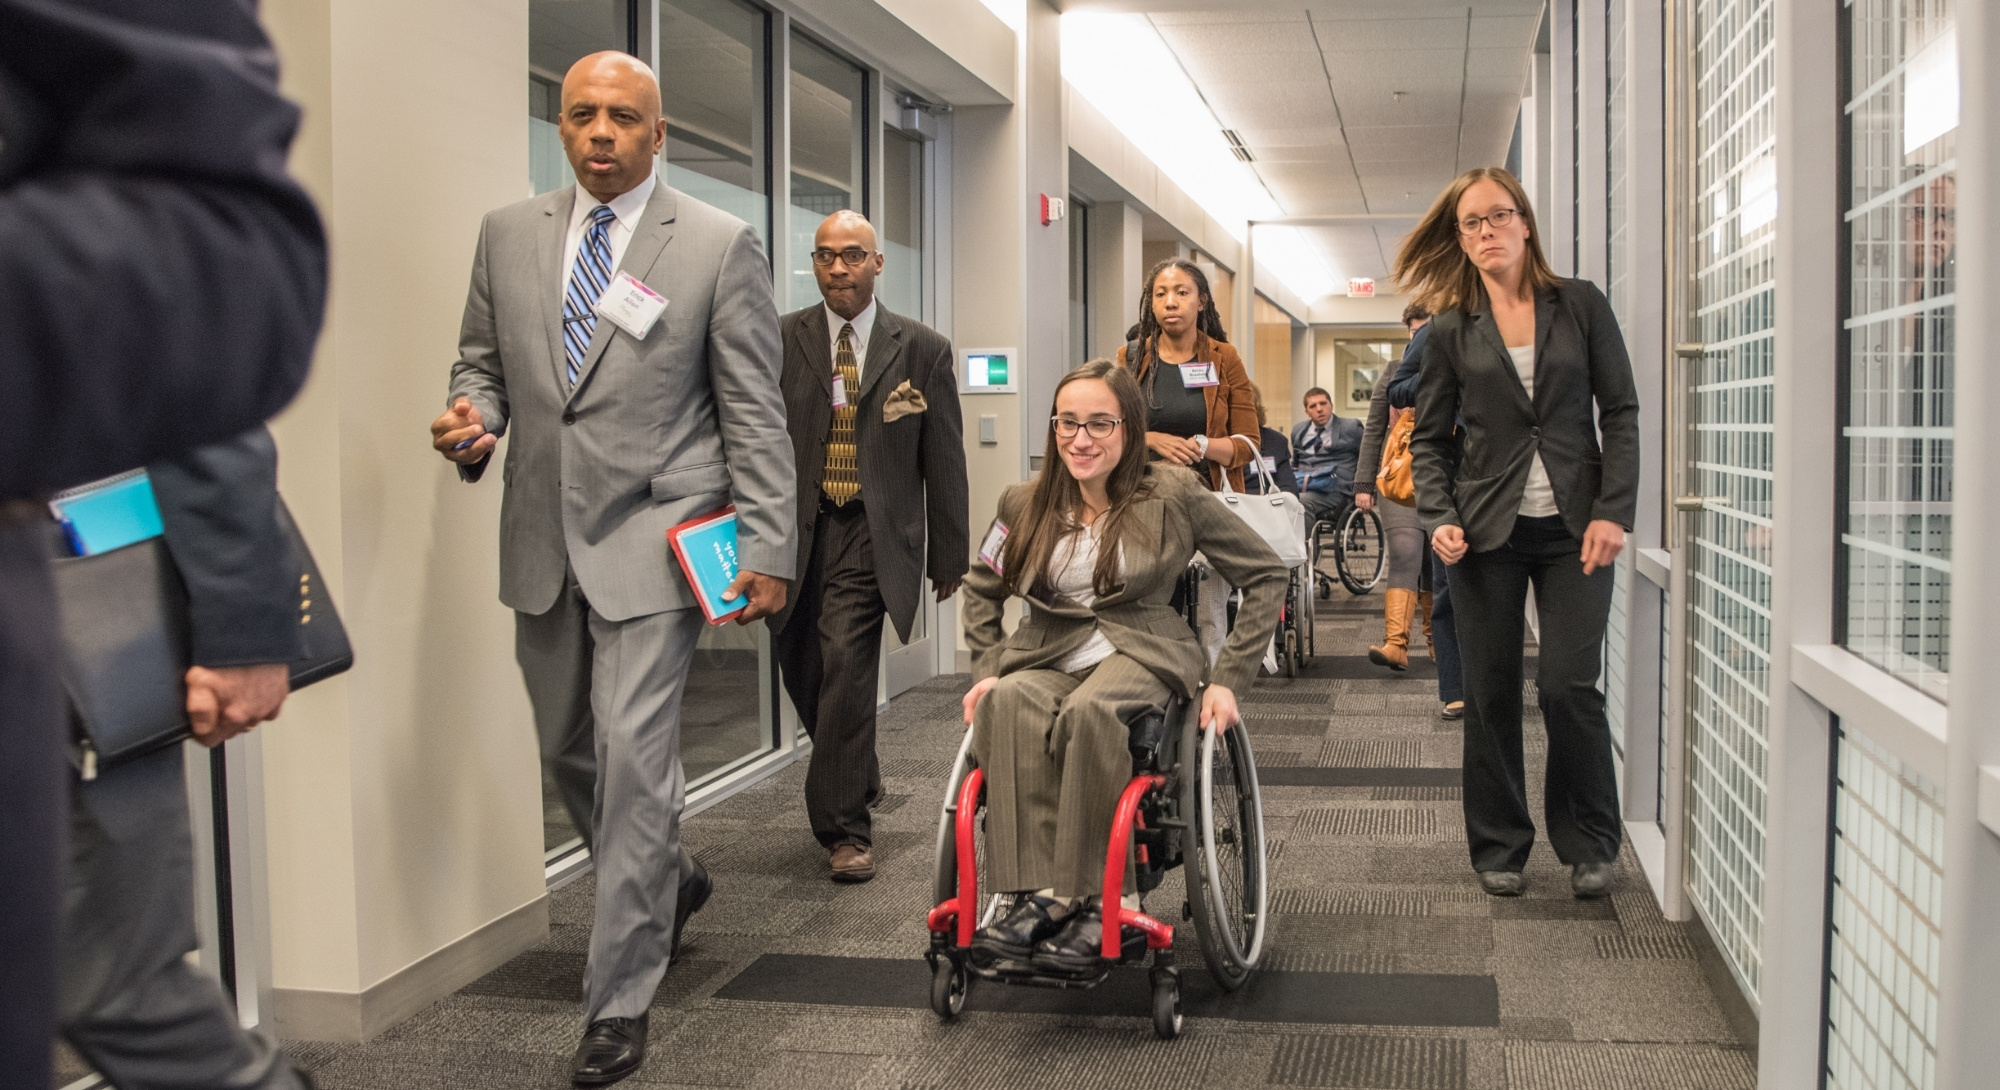 A group of individuals with various identities and abilities navigate a long hallway.